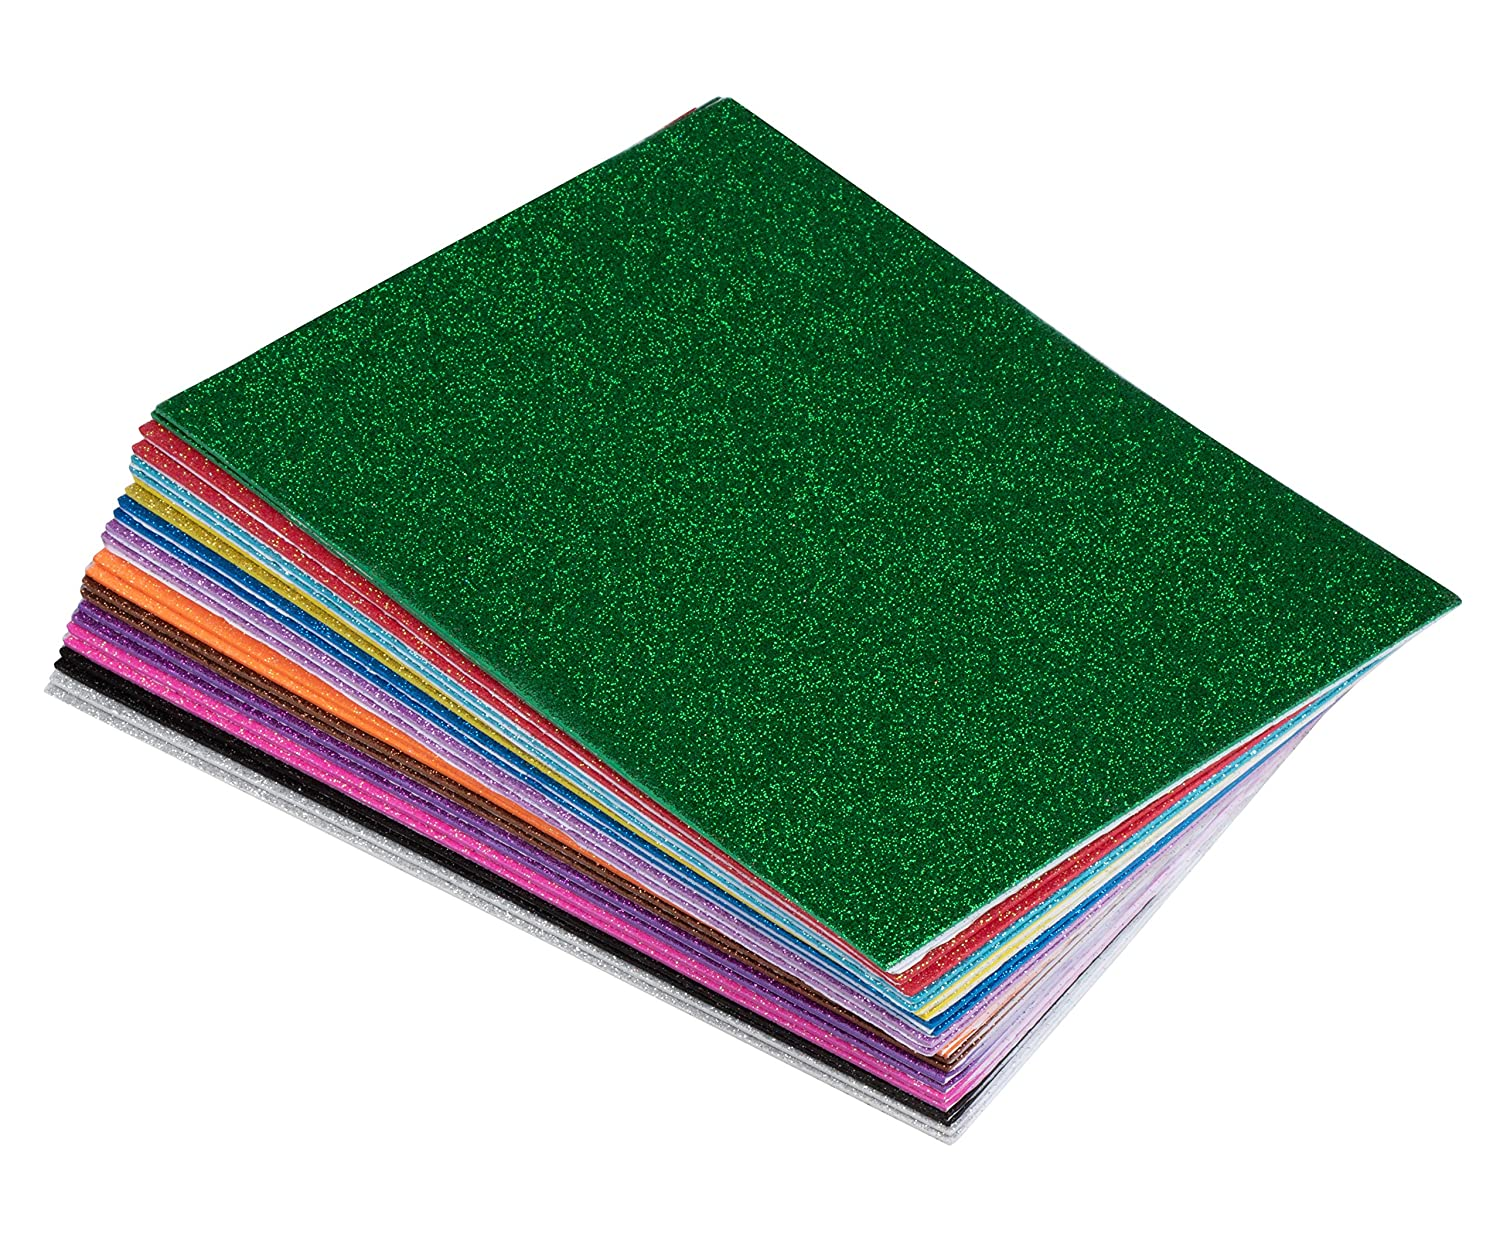 Foam Sheet - 48-Pack EVA Foam Sheets, Foam Paper, Foamie Sheet, Craft Foam, for Craft, Classroom Project, Scrapbooking, DIY, Art Craft, Parties, 12 Assorted Colors, 9 x 12 x 0.06 Inches Juvale